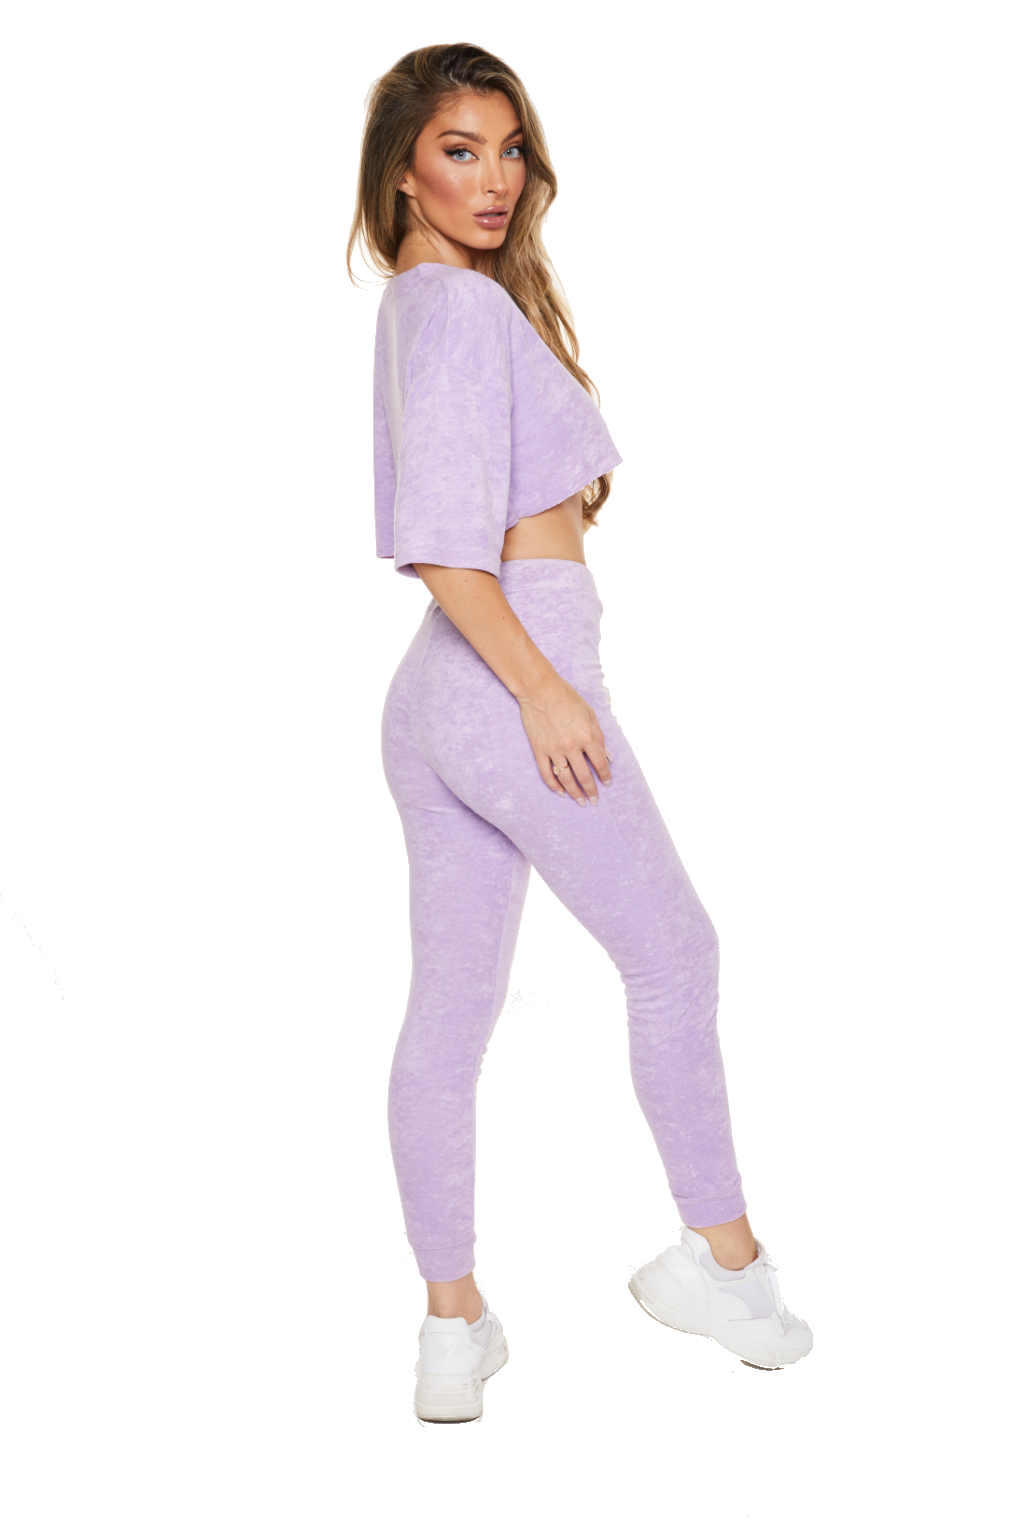 WORLDS SOFTEST JOGGER SET - www.prettyboutique.com